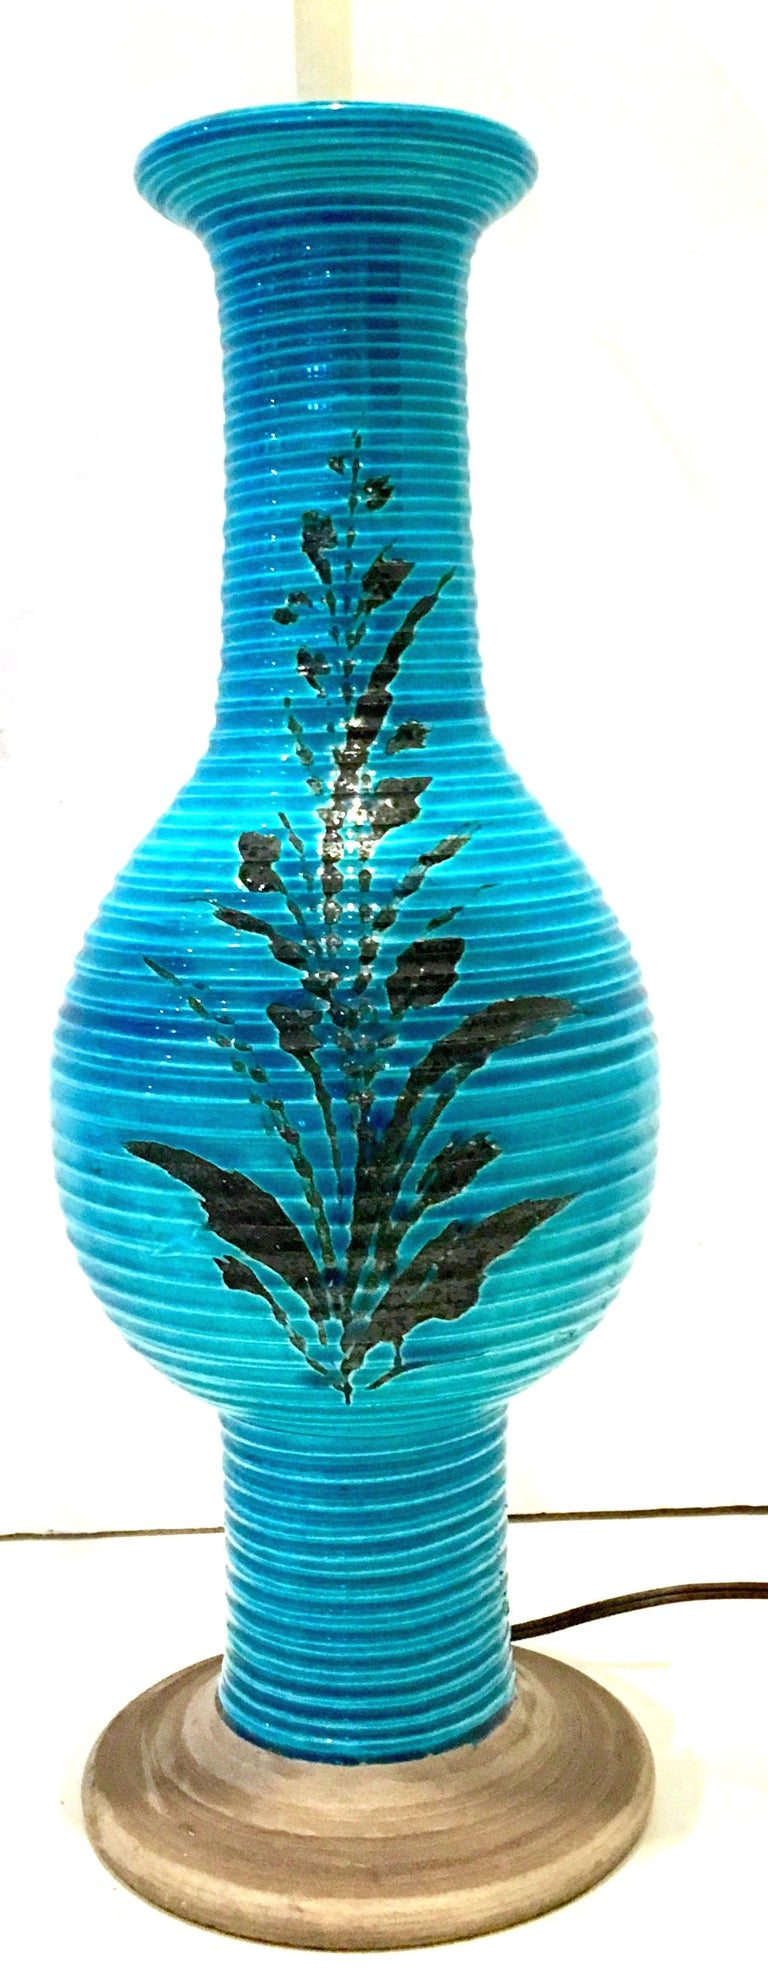 Hand-Painted 1960s Italian Cerulean Blue & Black Ceramic Glaze Pottery Lamp by, Bitossi For Sale